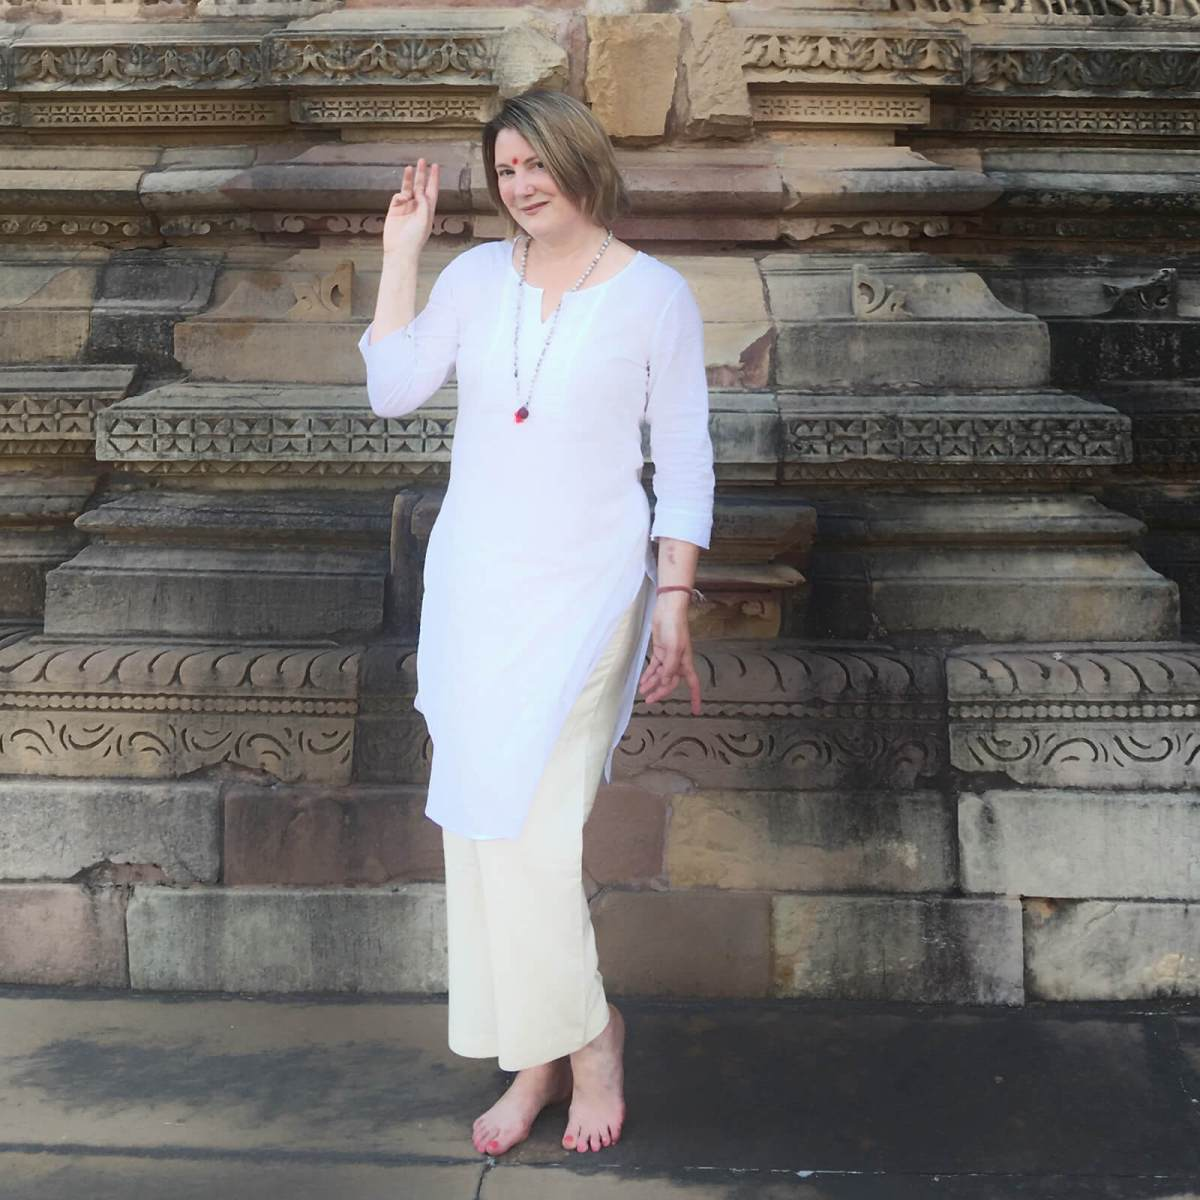 Mariellen Ward exploring the Khajuraho temples